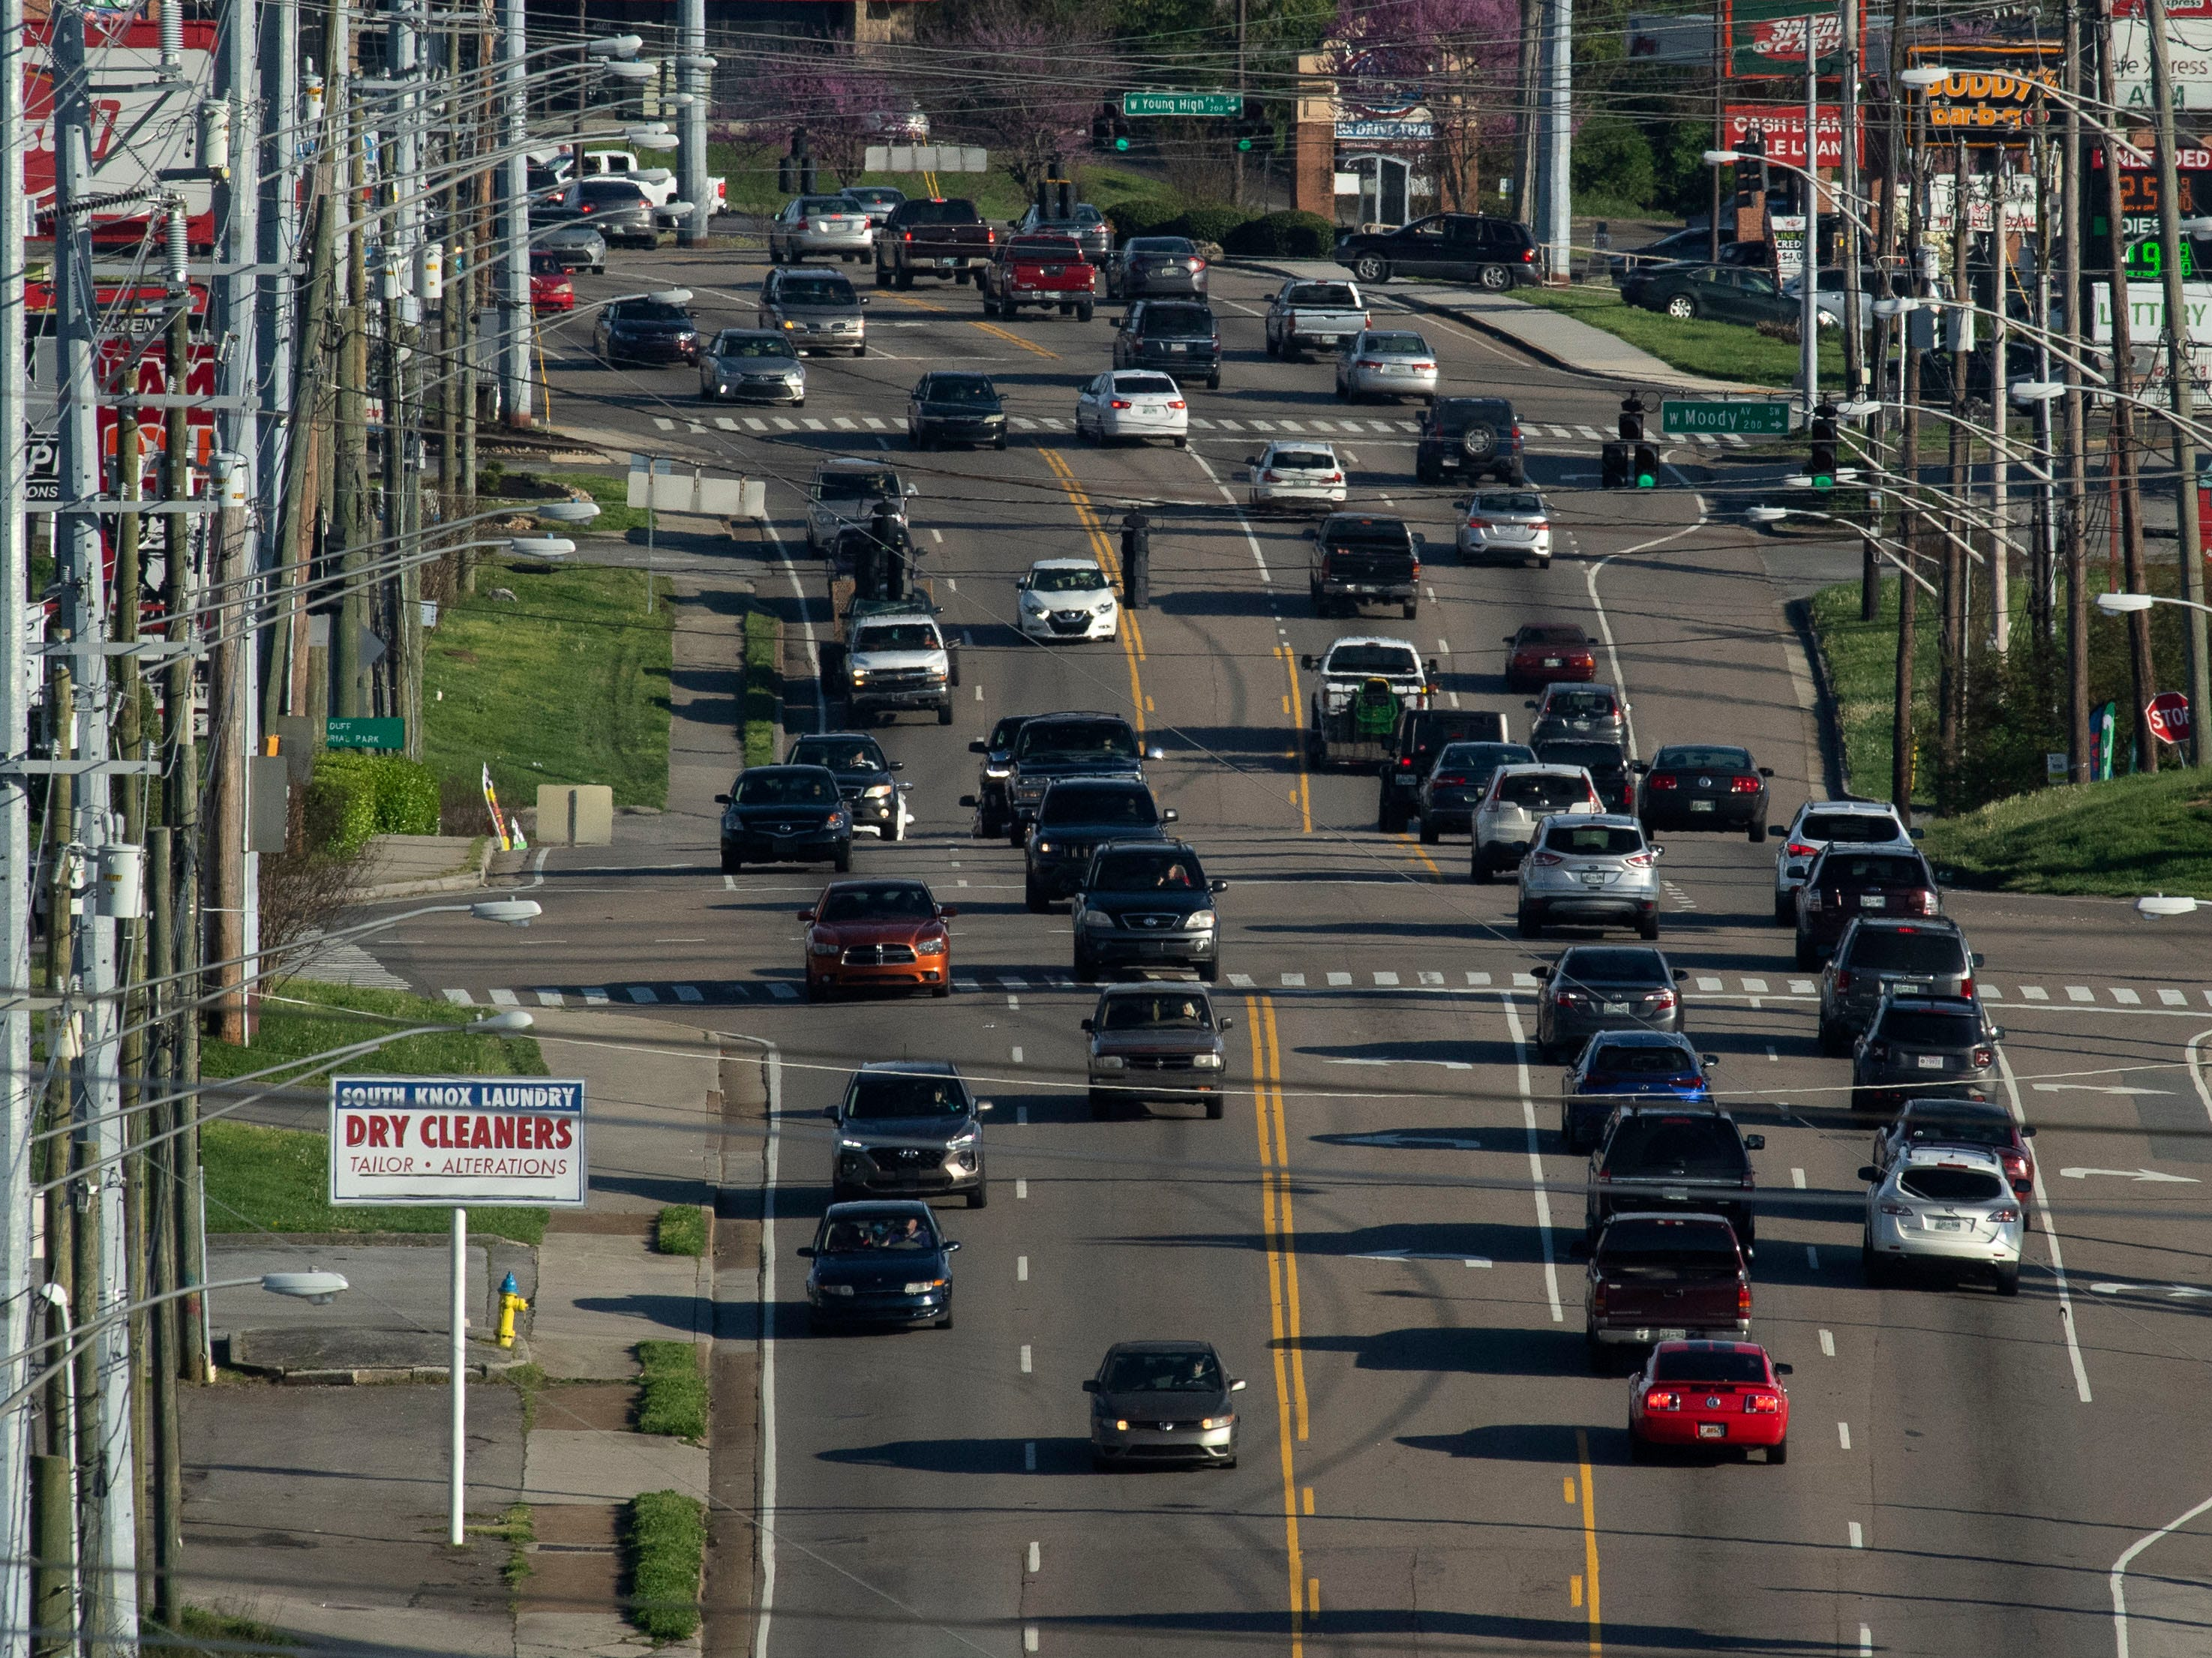 Traffic at Moody Ave. on Chapman Highway on Tuesday, April 9, 2019.